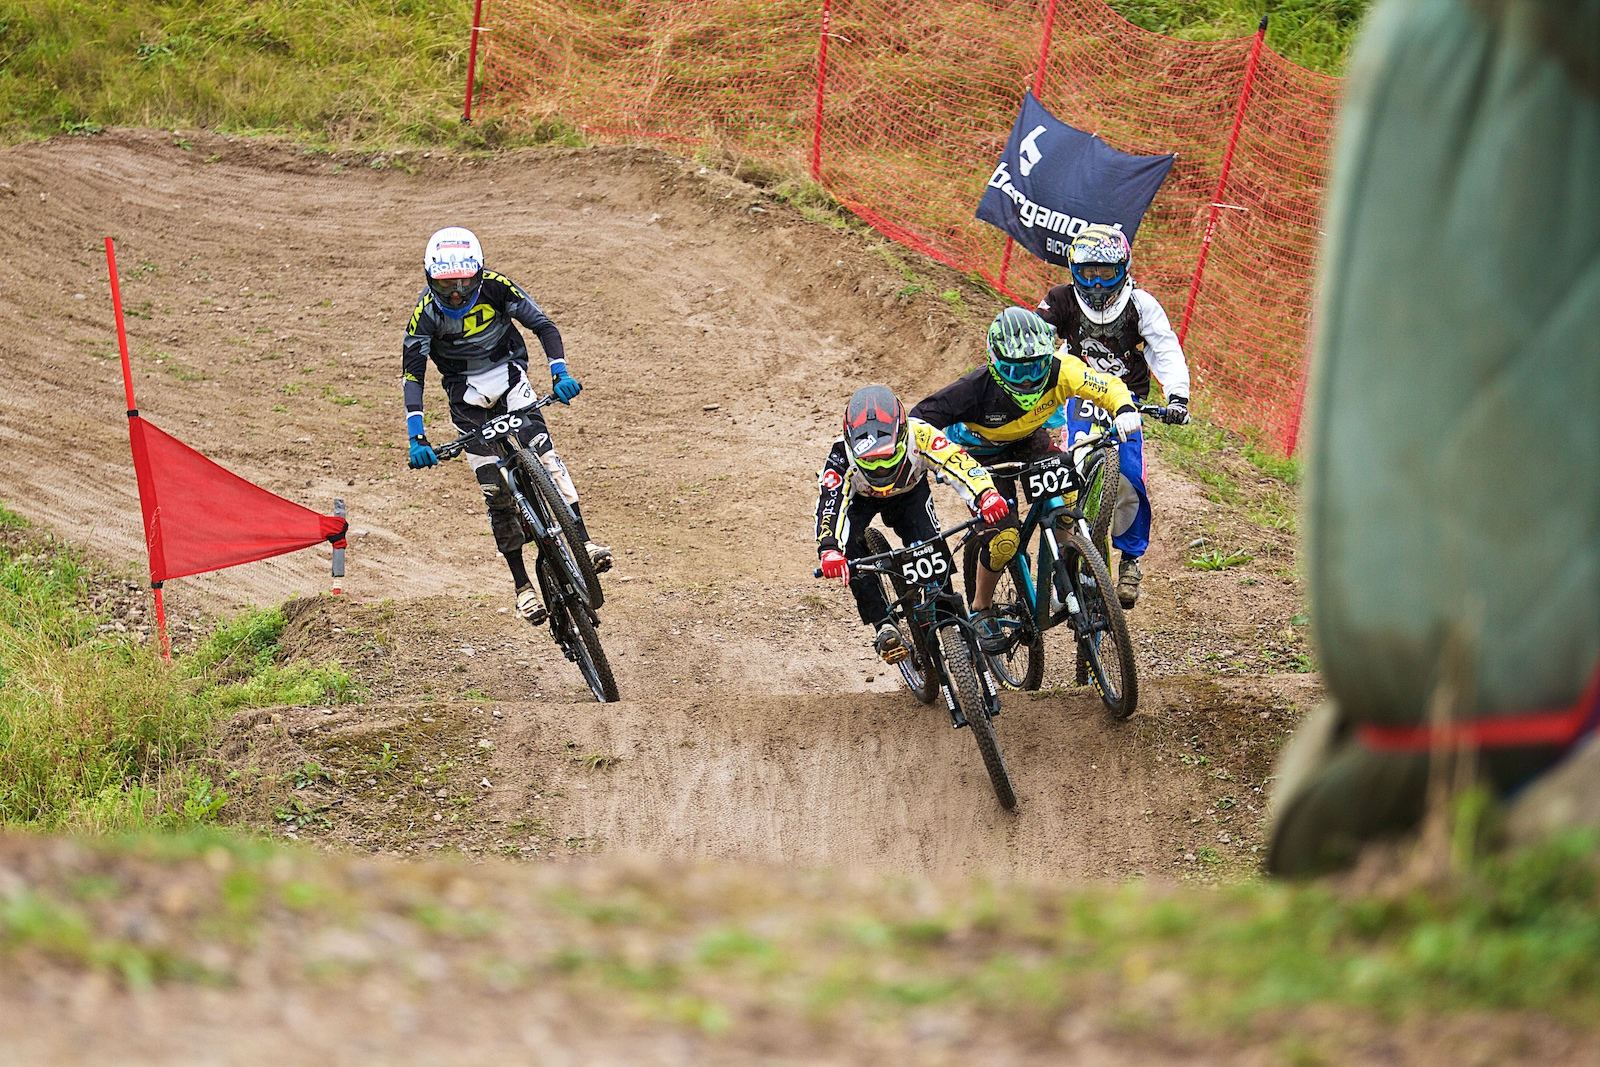 The first turn in Leibstadt is well known for some overtaking action - Photographer Valentin Mueller